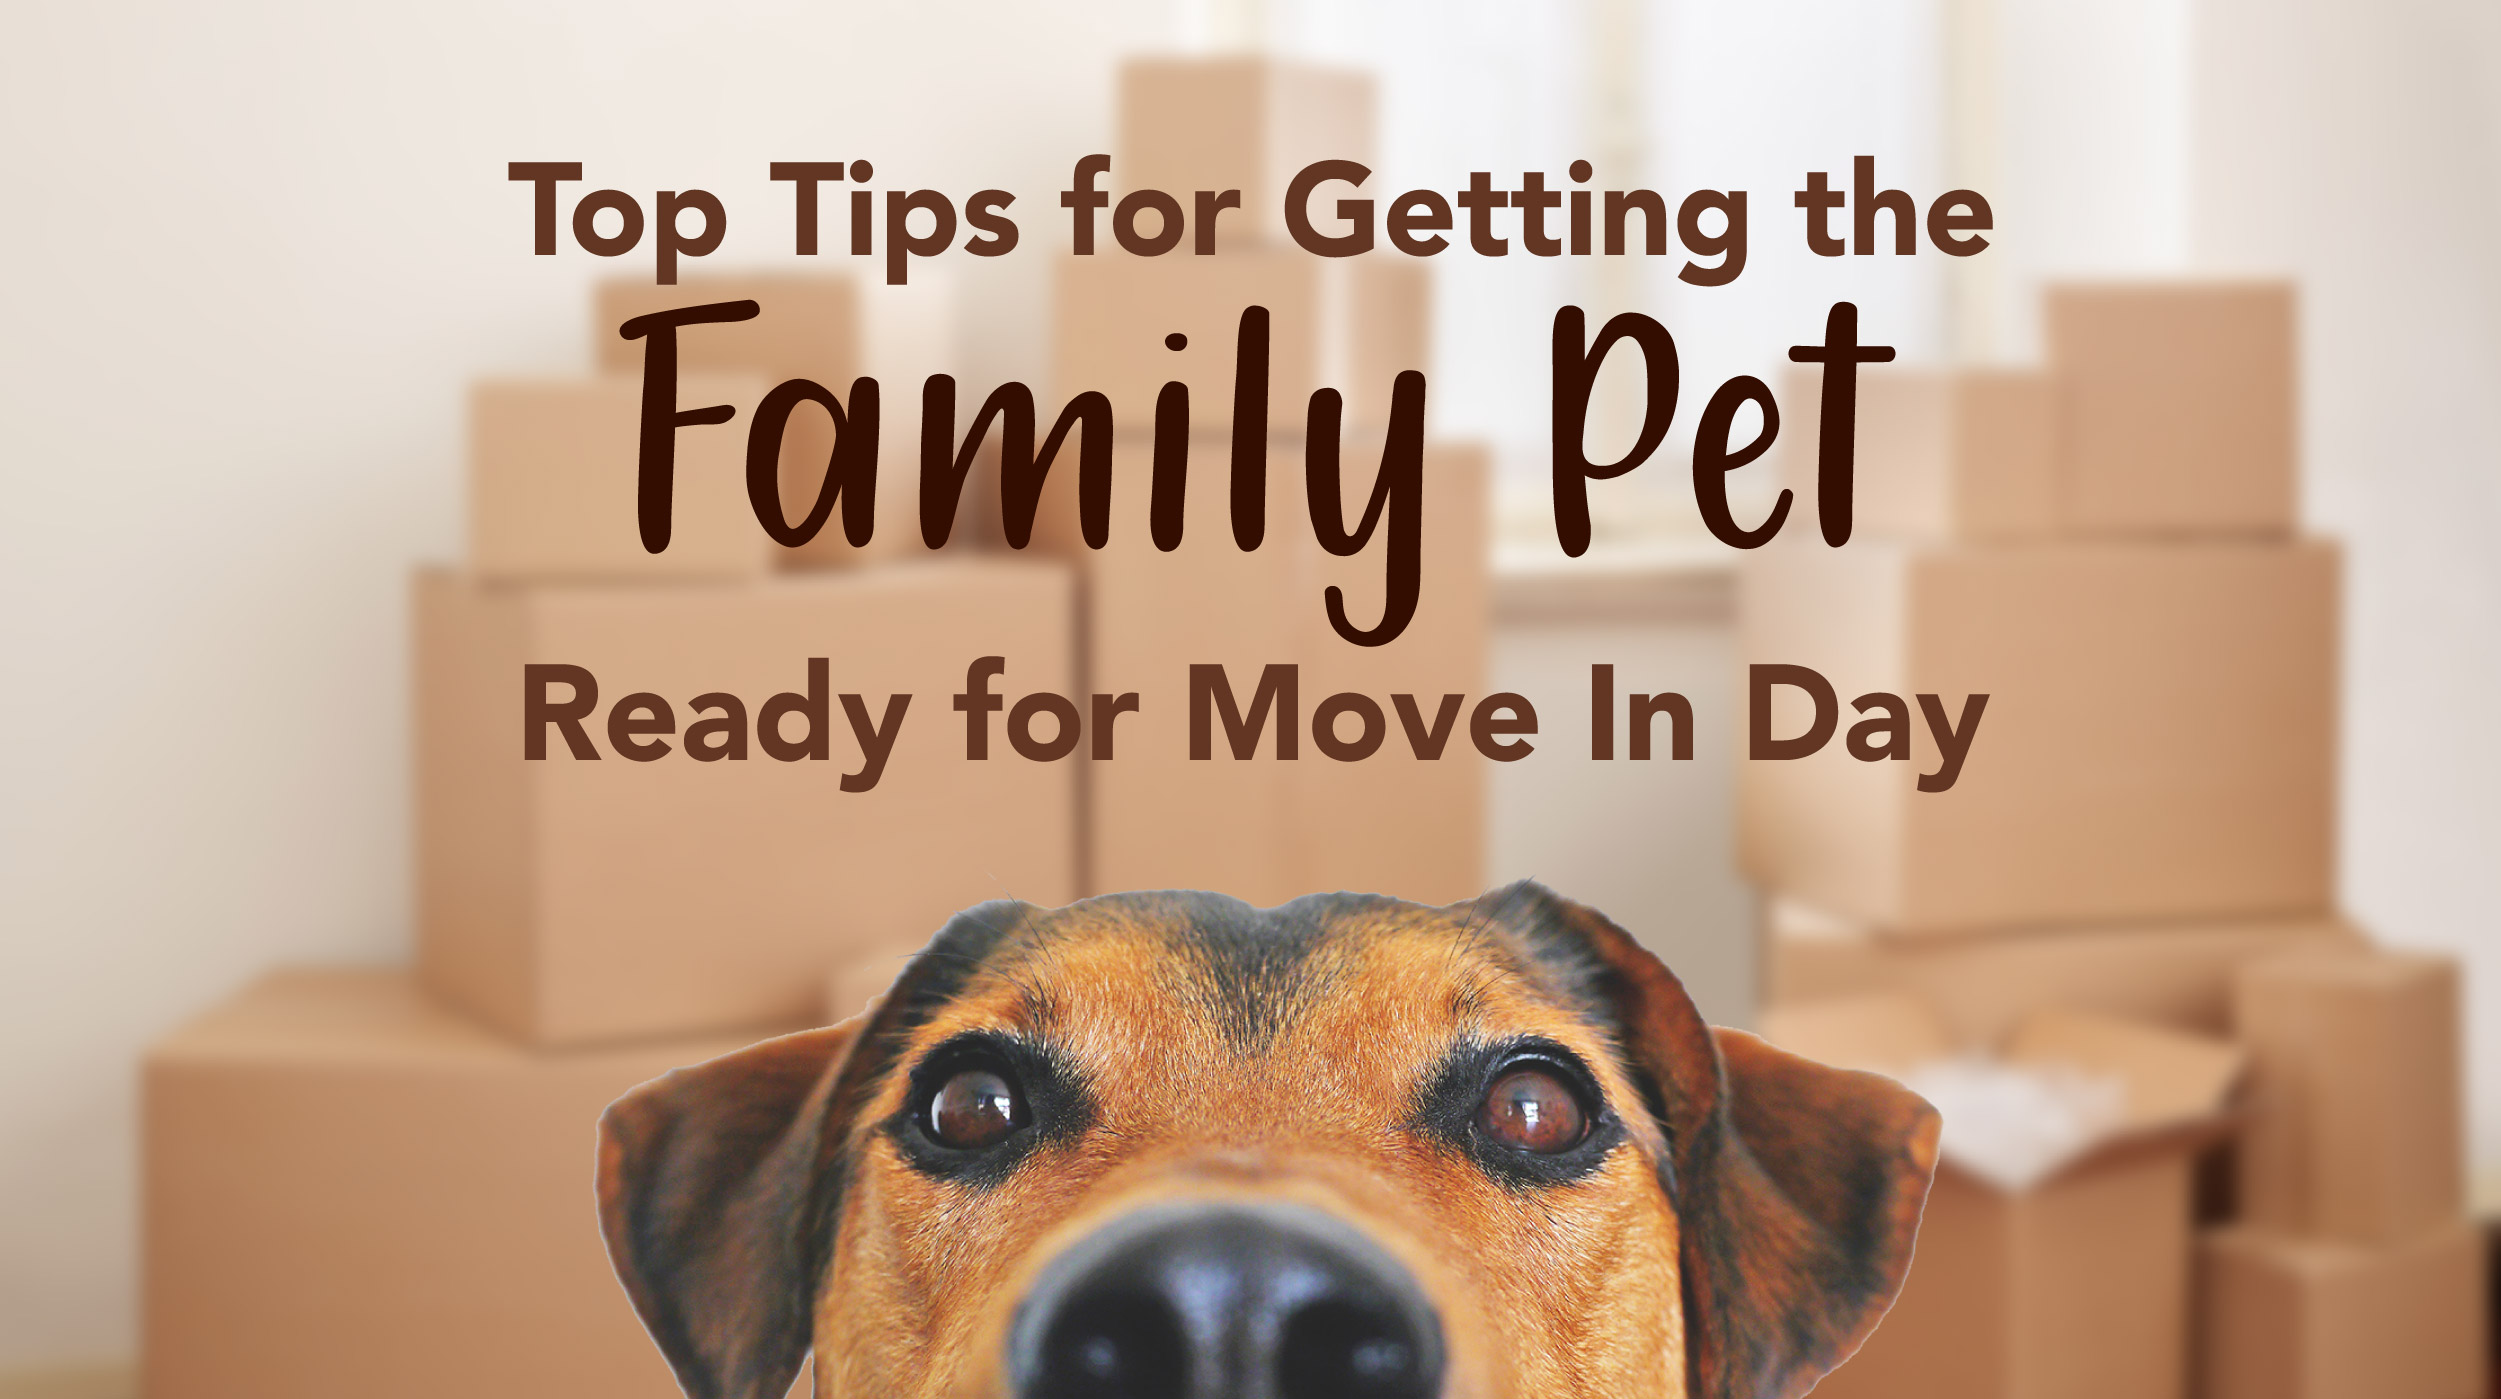 Top Tips for Getting The Family Pet Ready for Move in Day